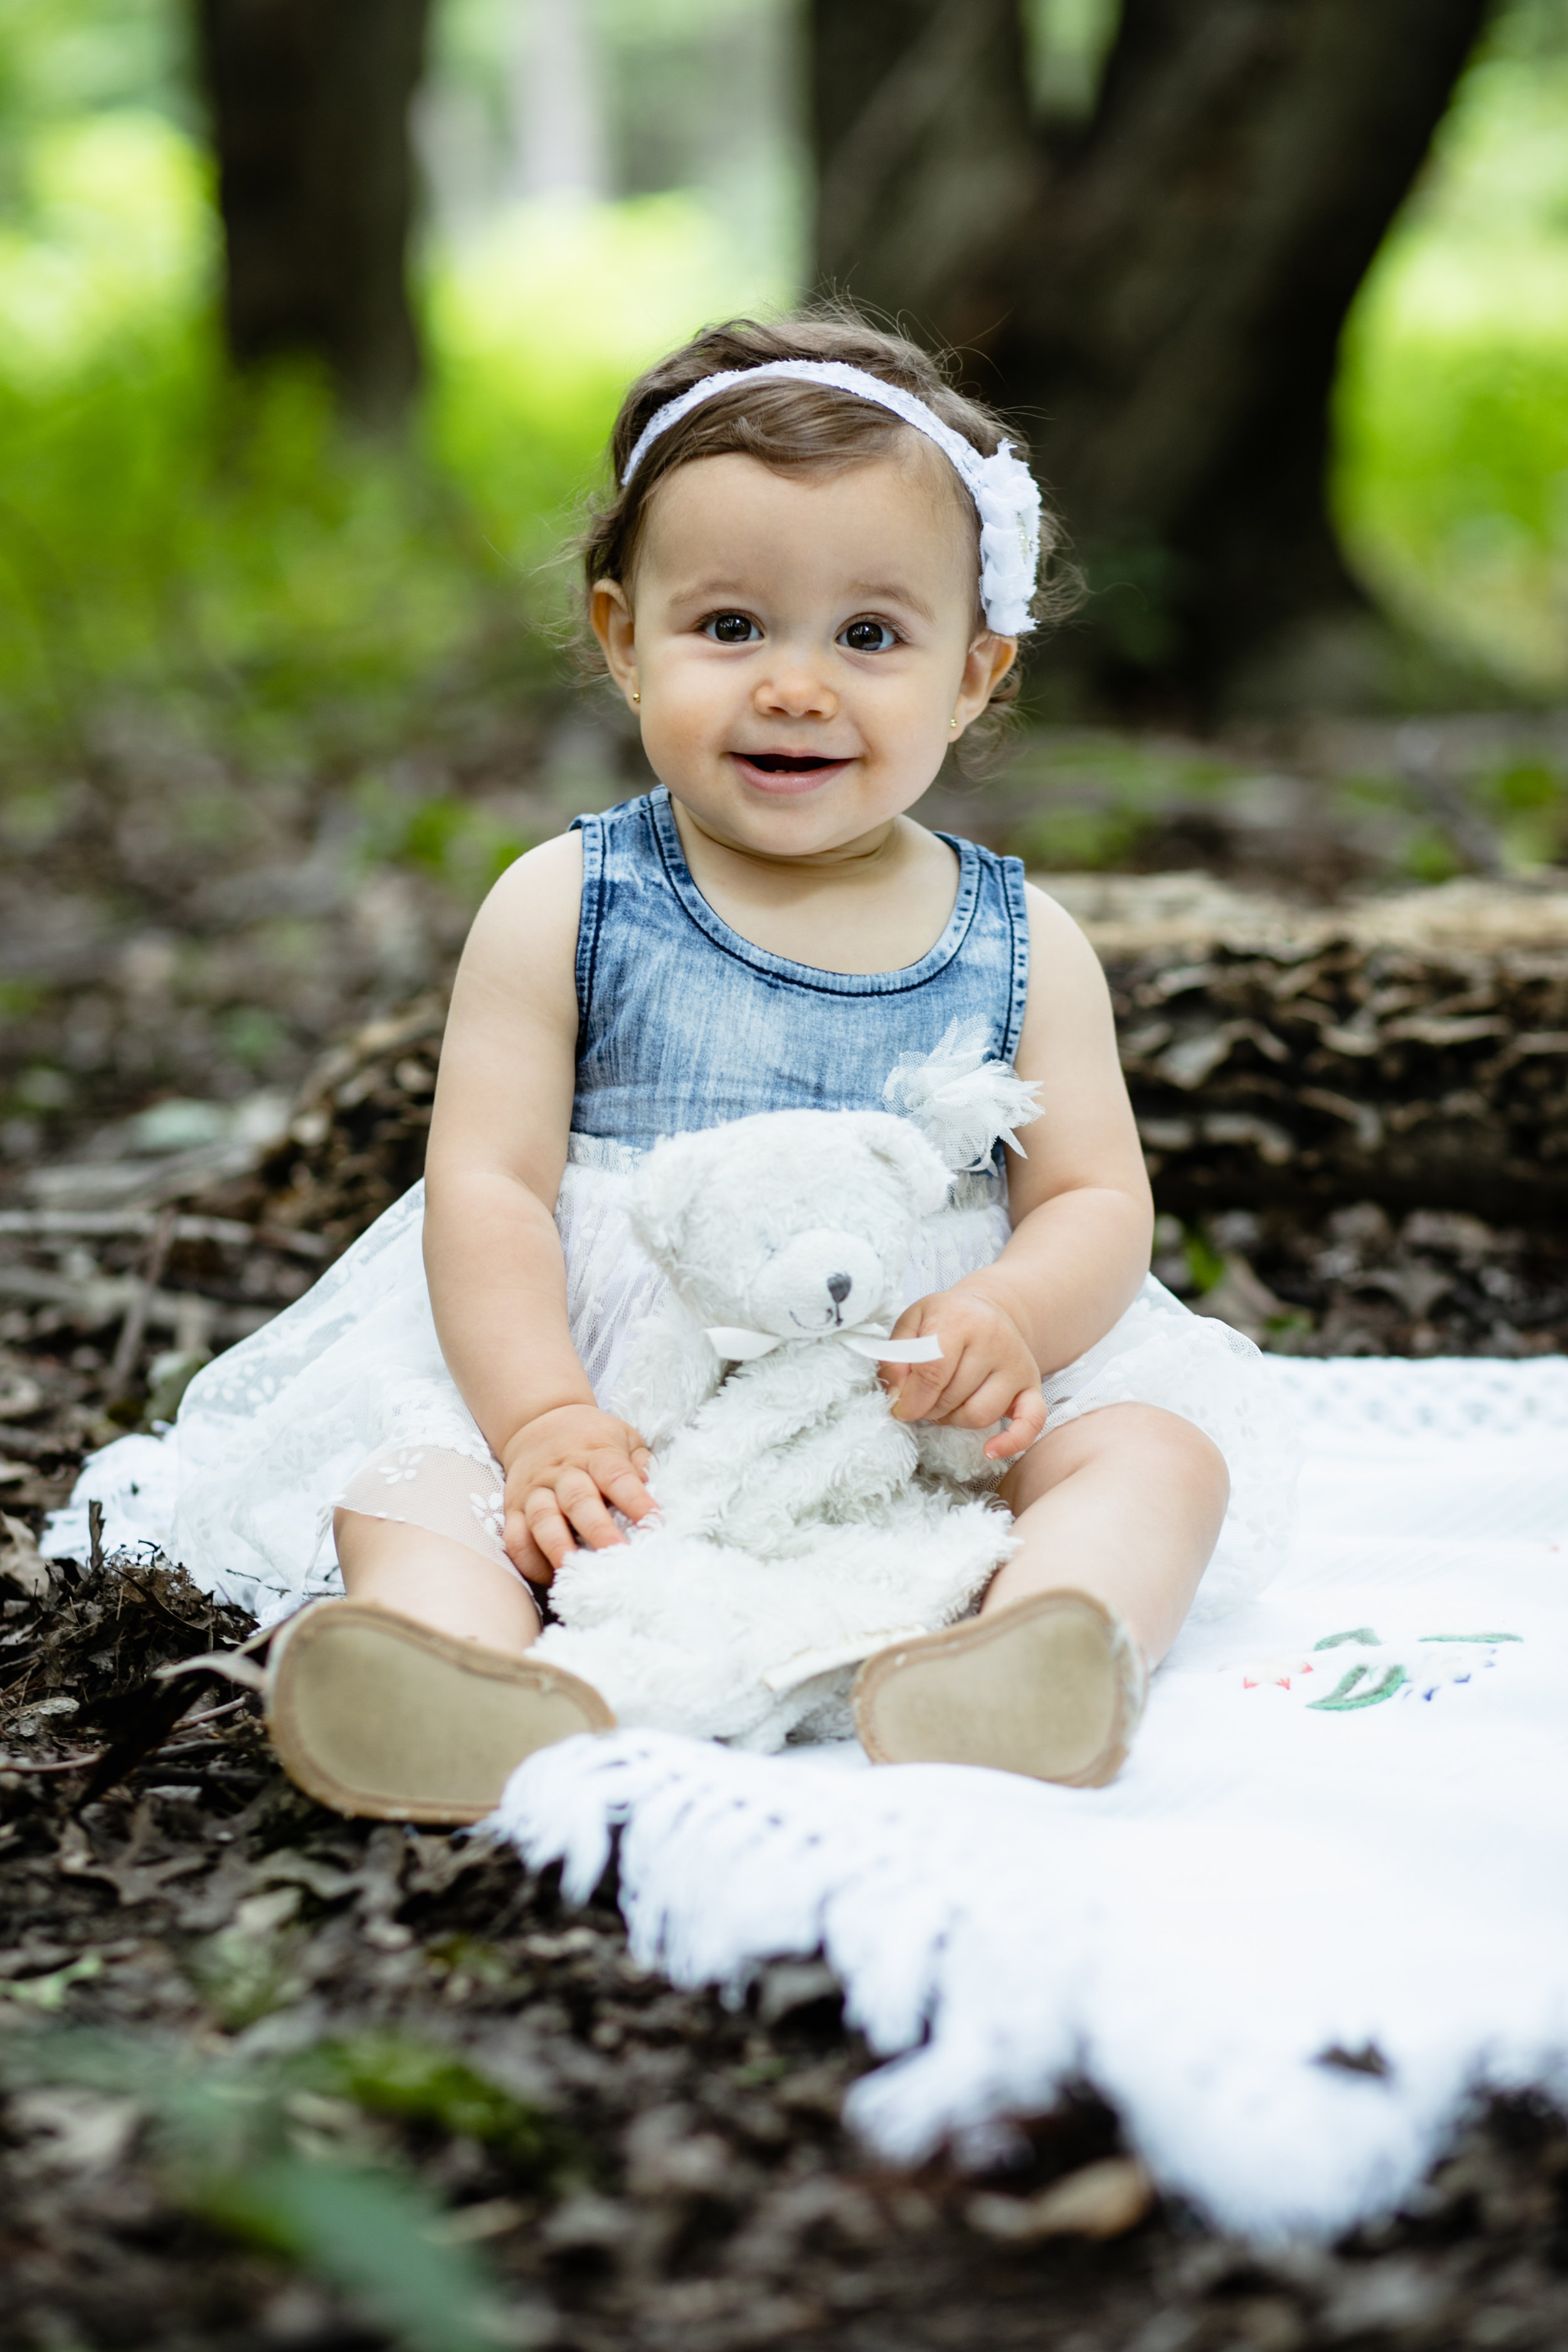 """The photos Anthony took of my daughter are precious!"" Anna Lemmo"